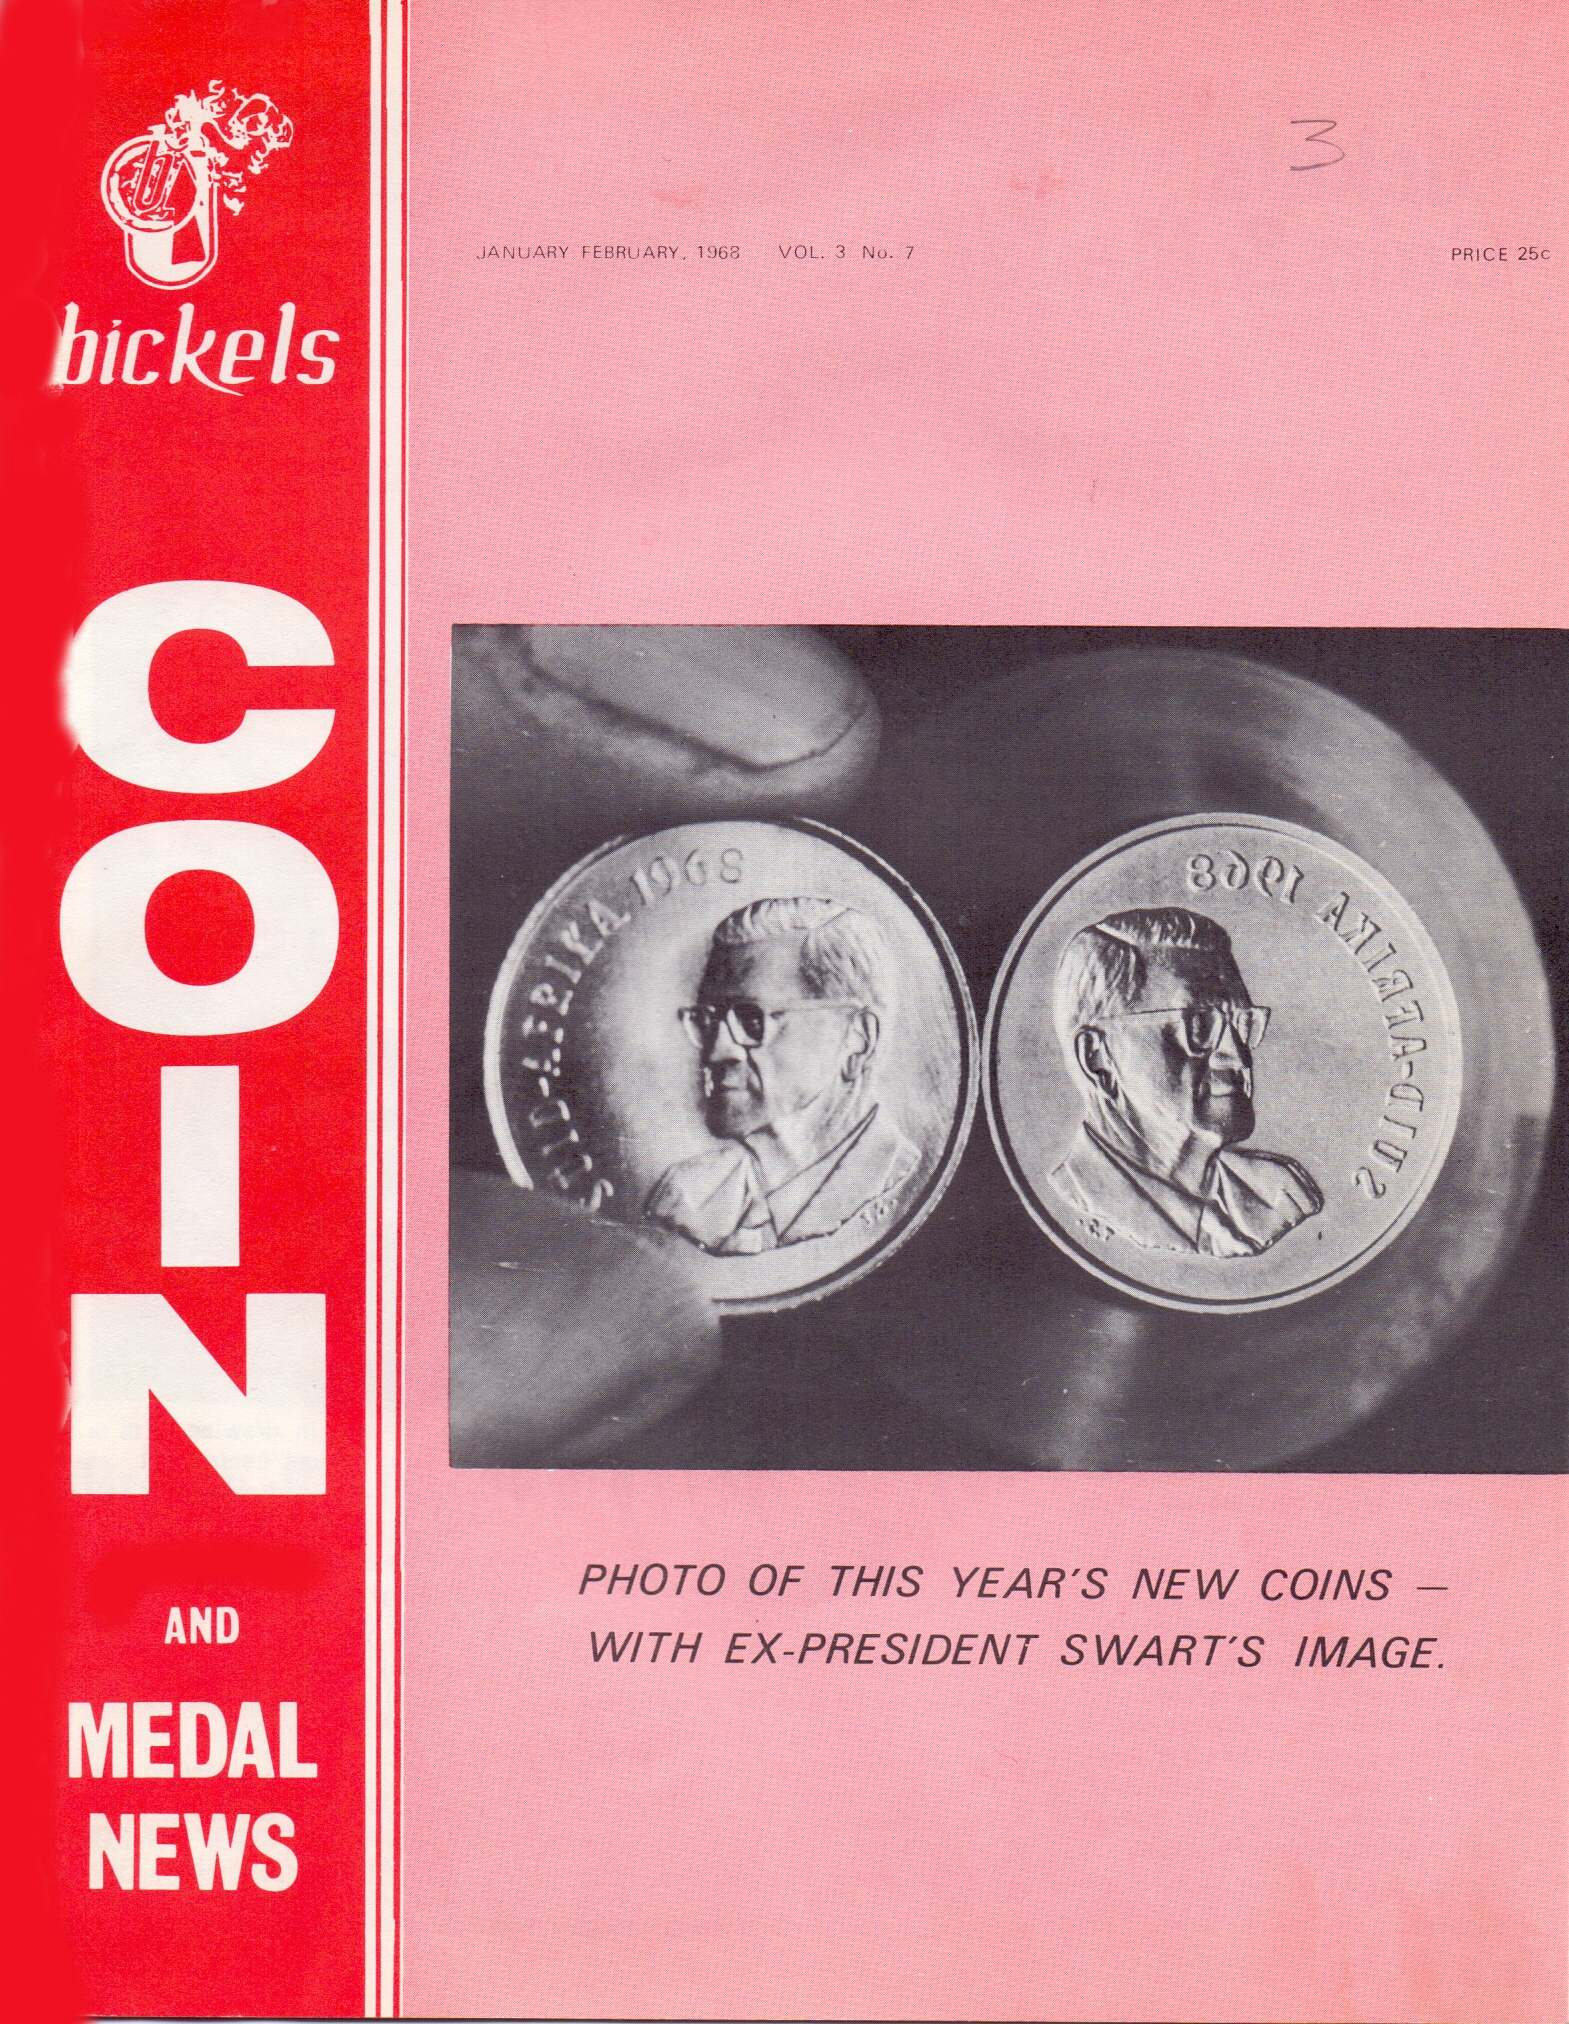 Bickels Coin & Medal News Jan Feb Mar 1968 Vol 3 No 7